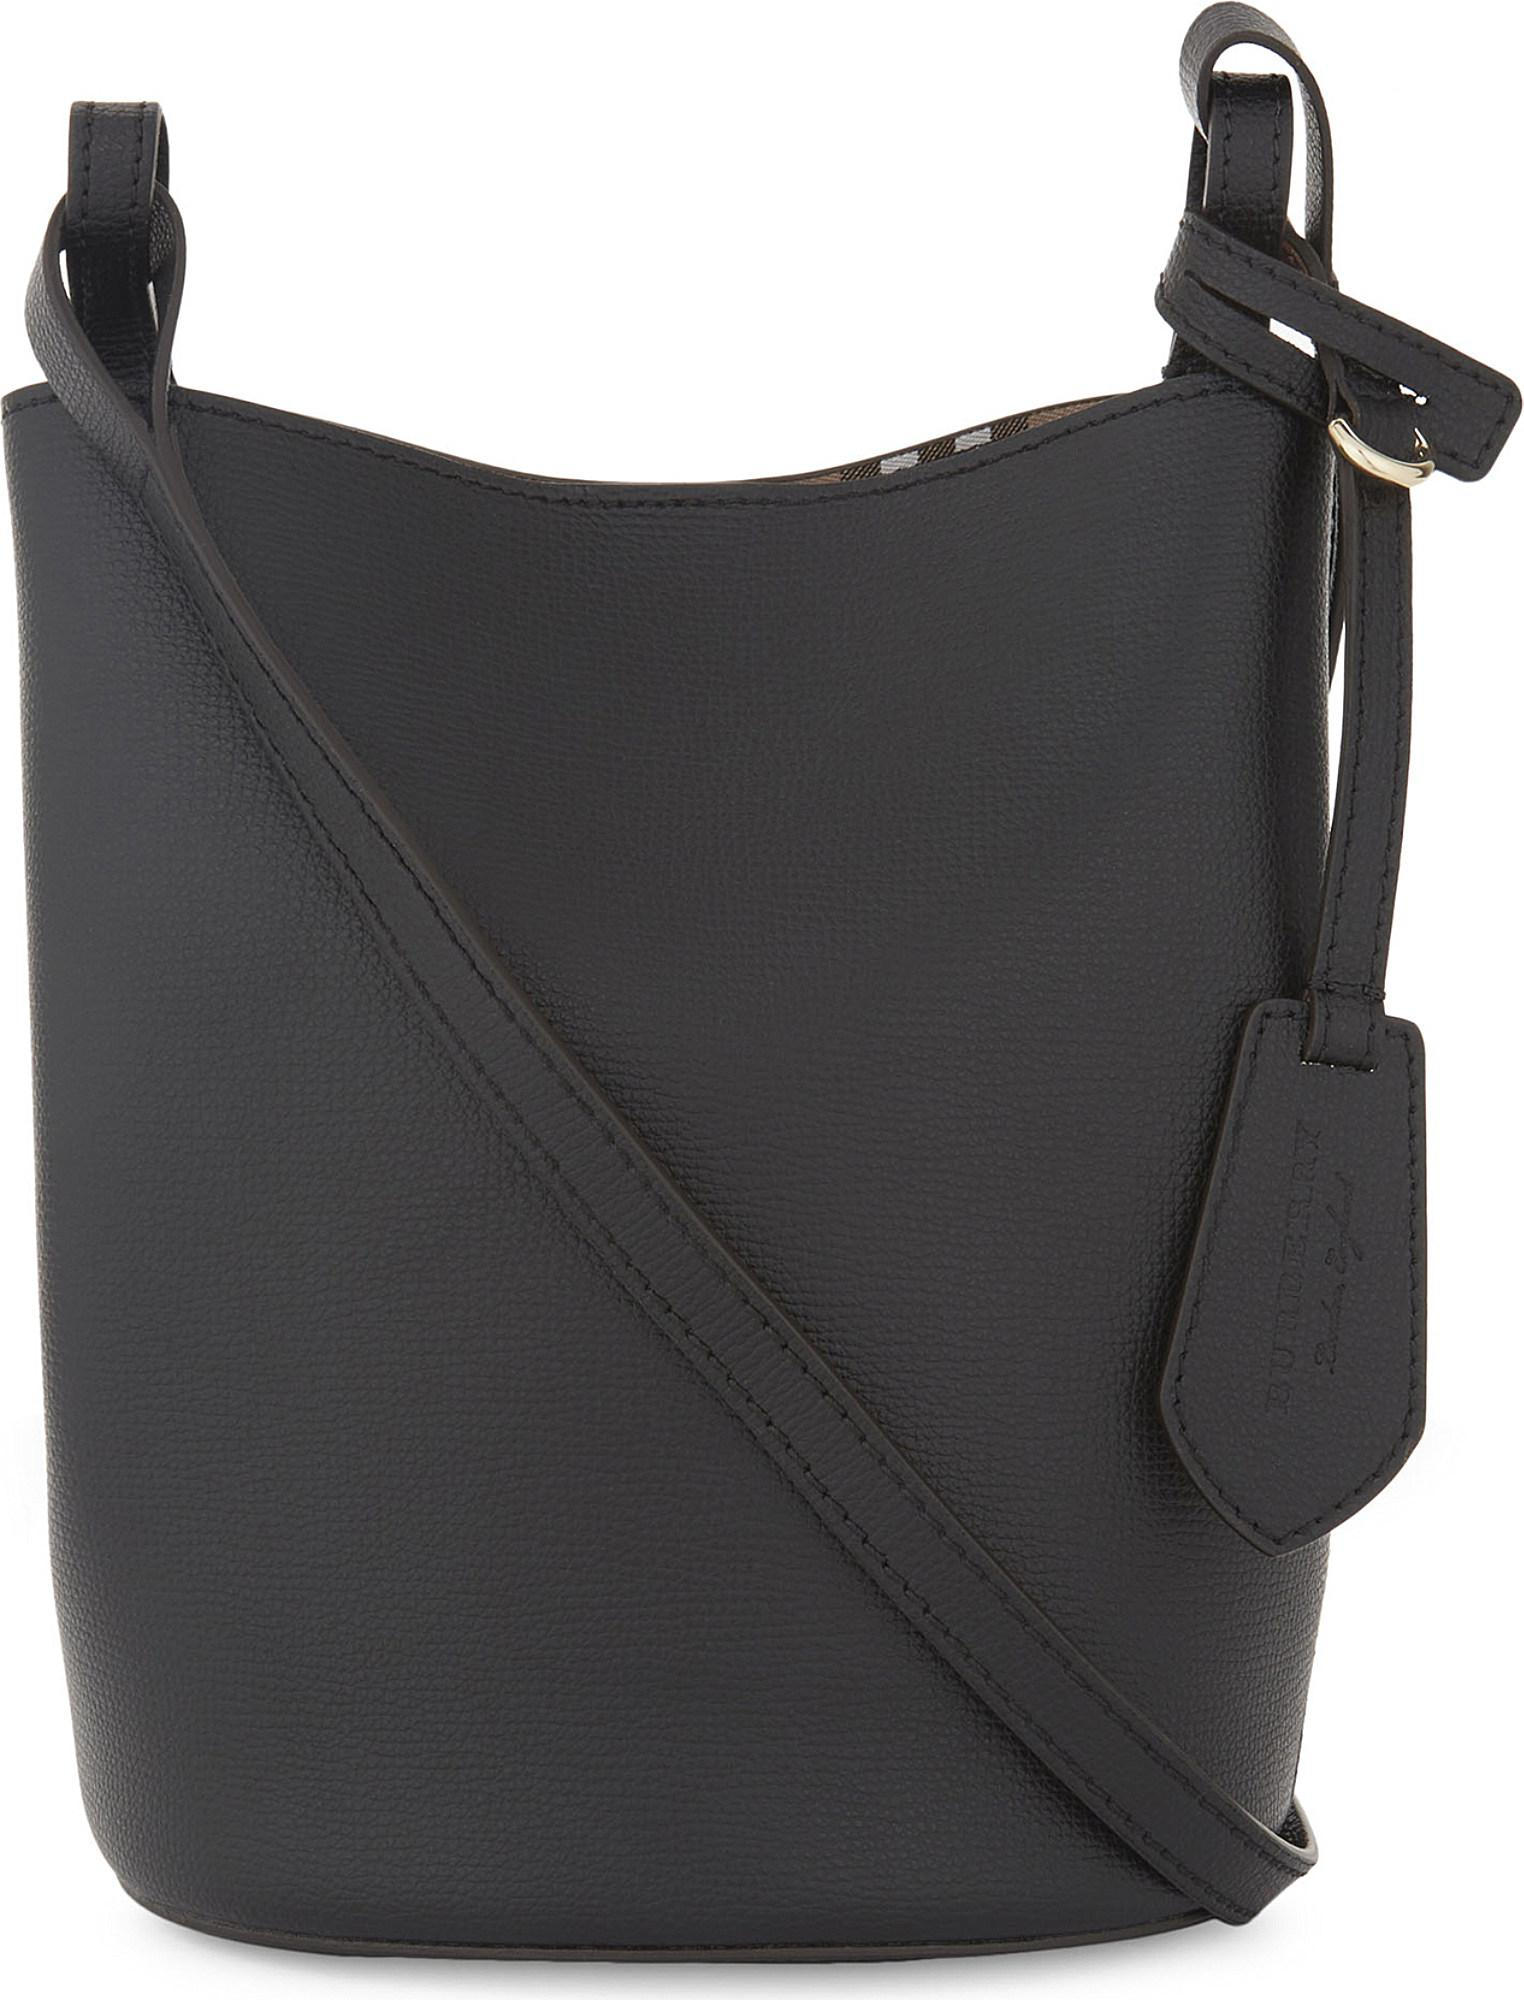 ea3a4ba75e1f Lyst - Burberry Lorne Leather Bucket Bag in Black